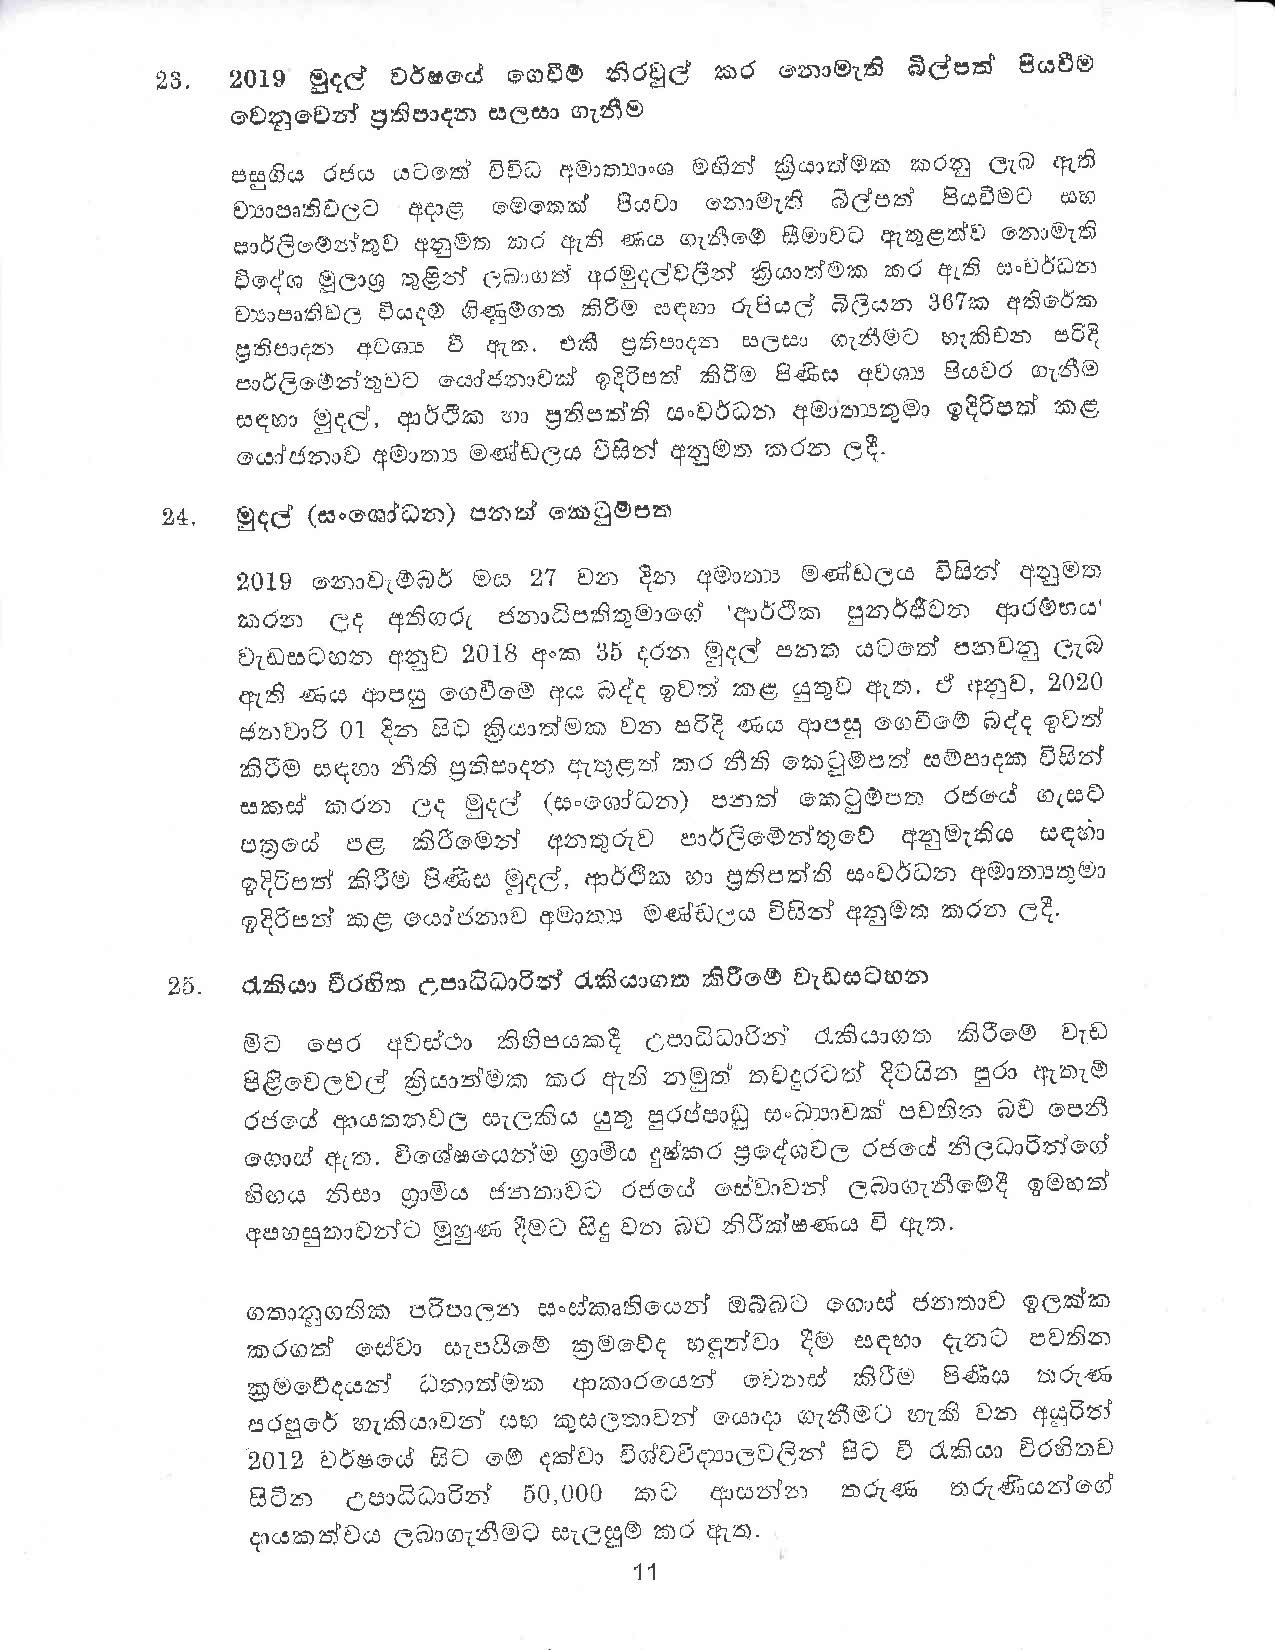 Cabinet Decision on 05.02.2020 page 011